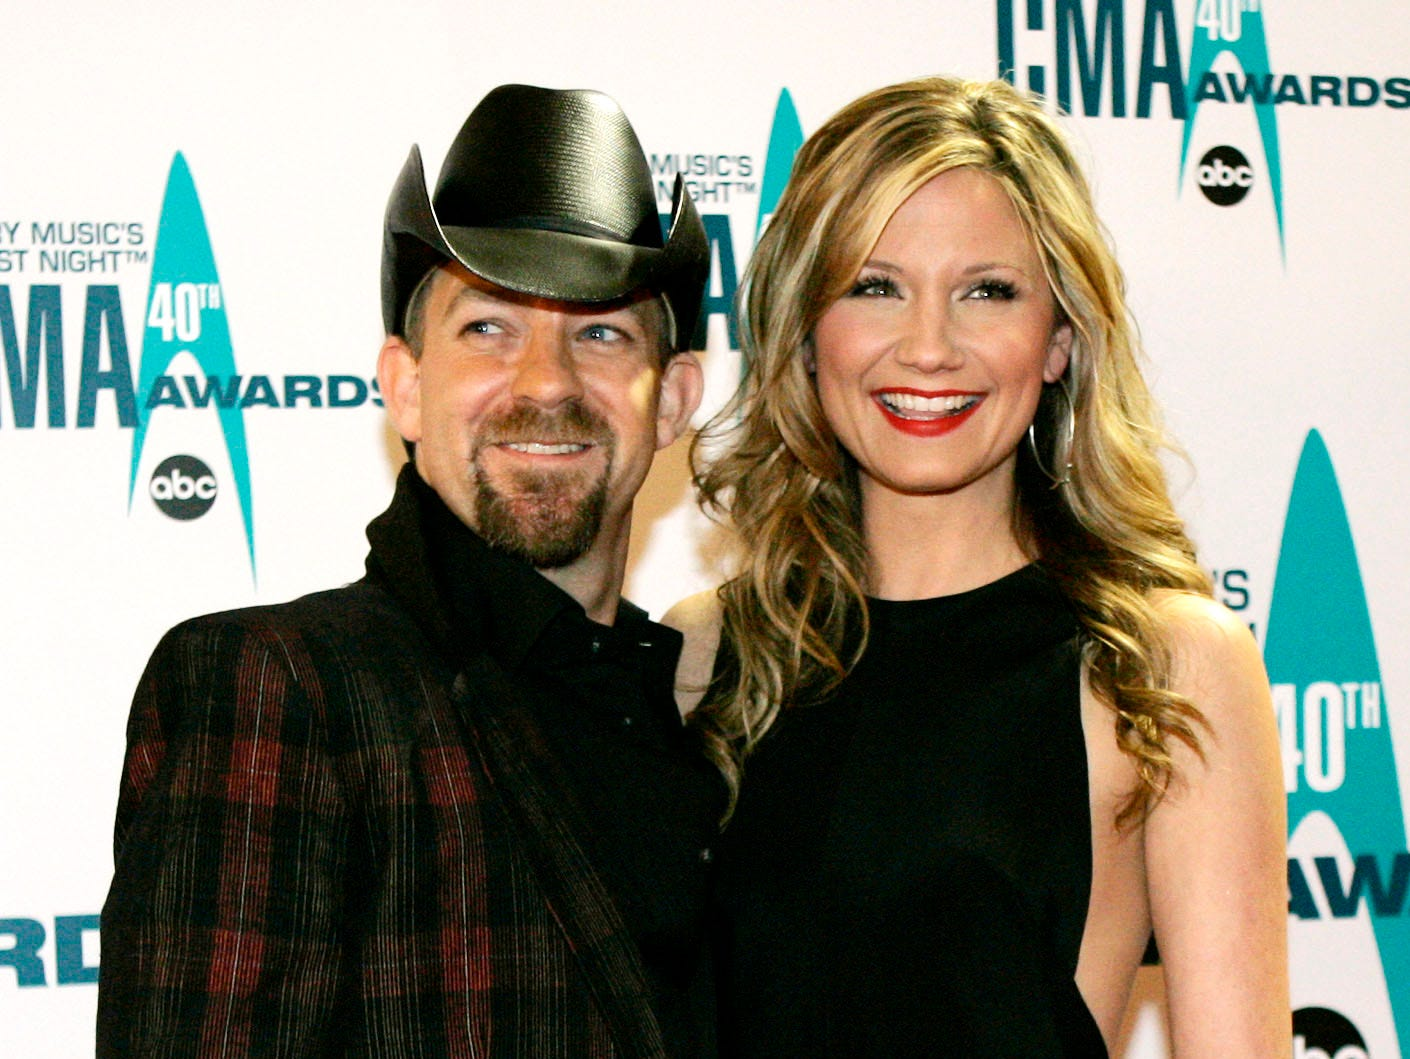 Kristian Bush, left, and Jennifer Nettles of Sugarland arrive at the 40th Annual CMA Awards in Nashville, Tenn. Monday, Nov. 6, 2006.